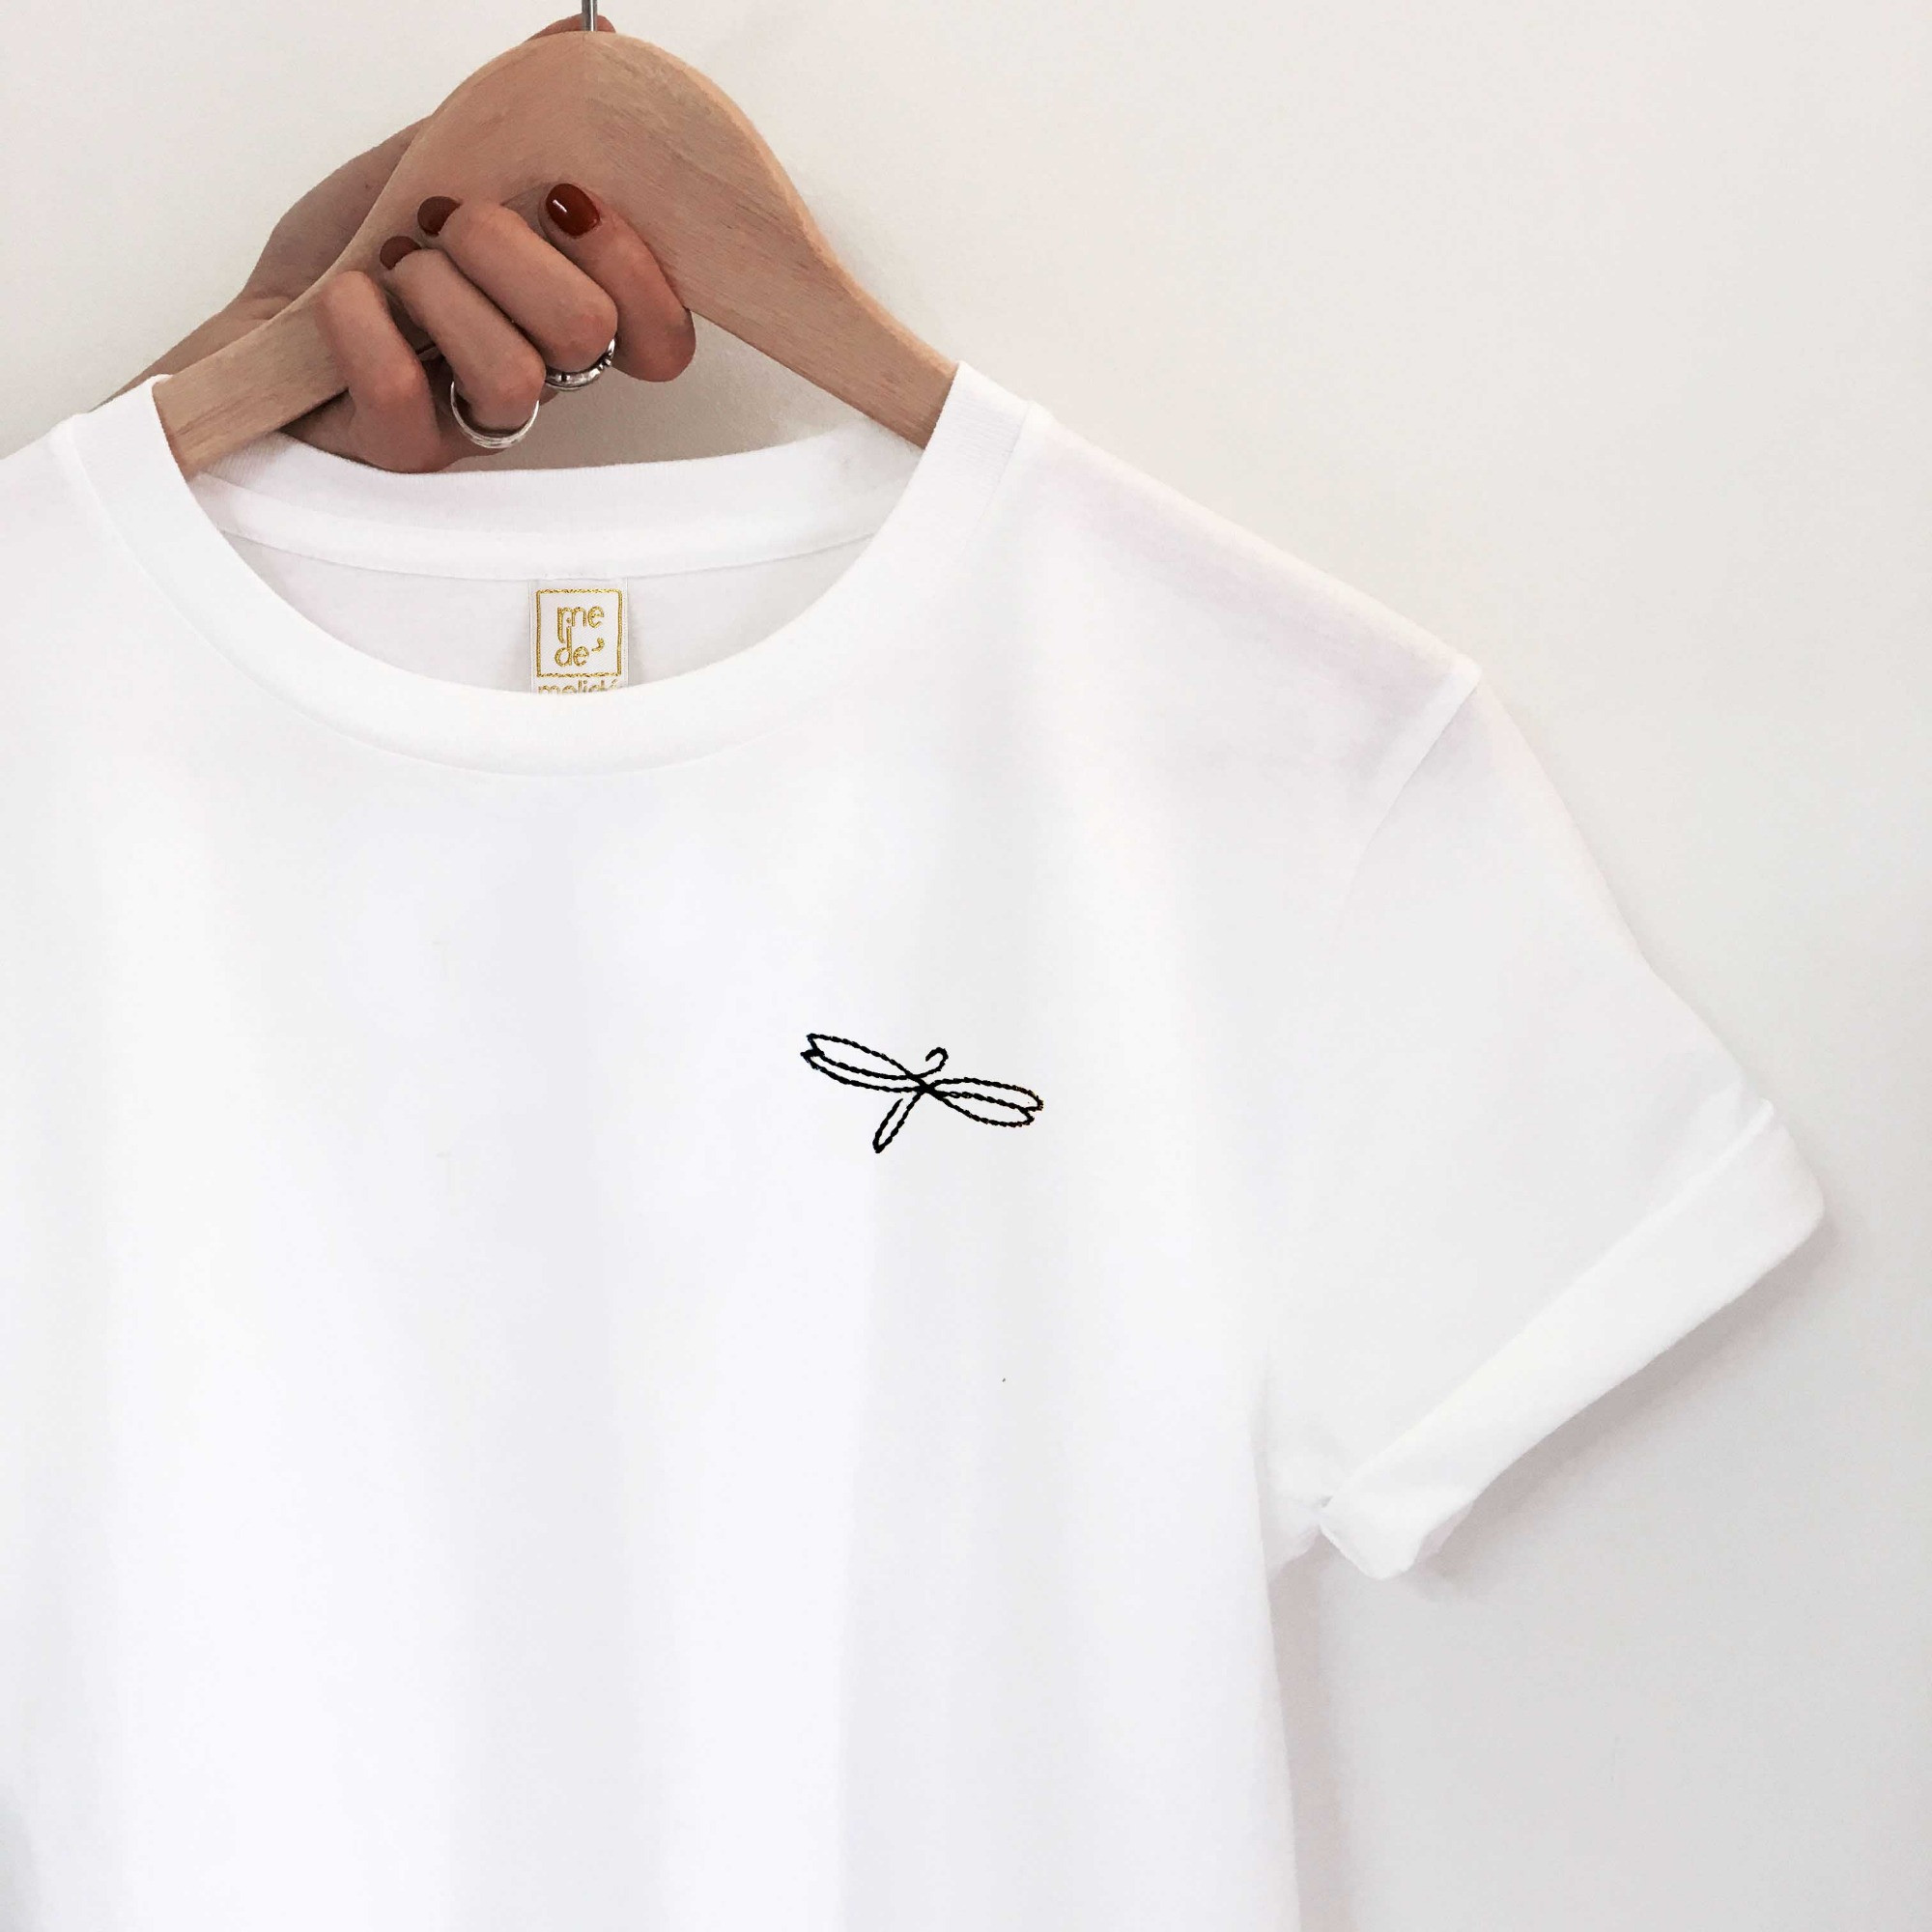 The DRAGONFLY tee